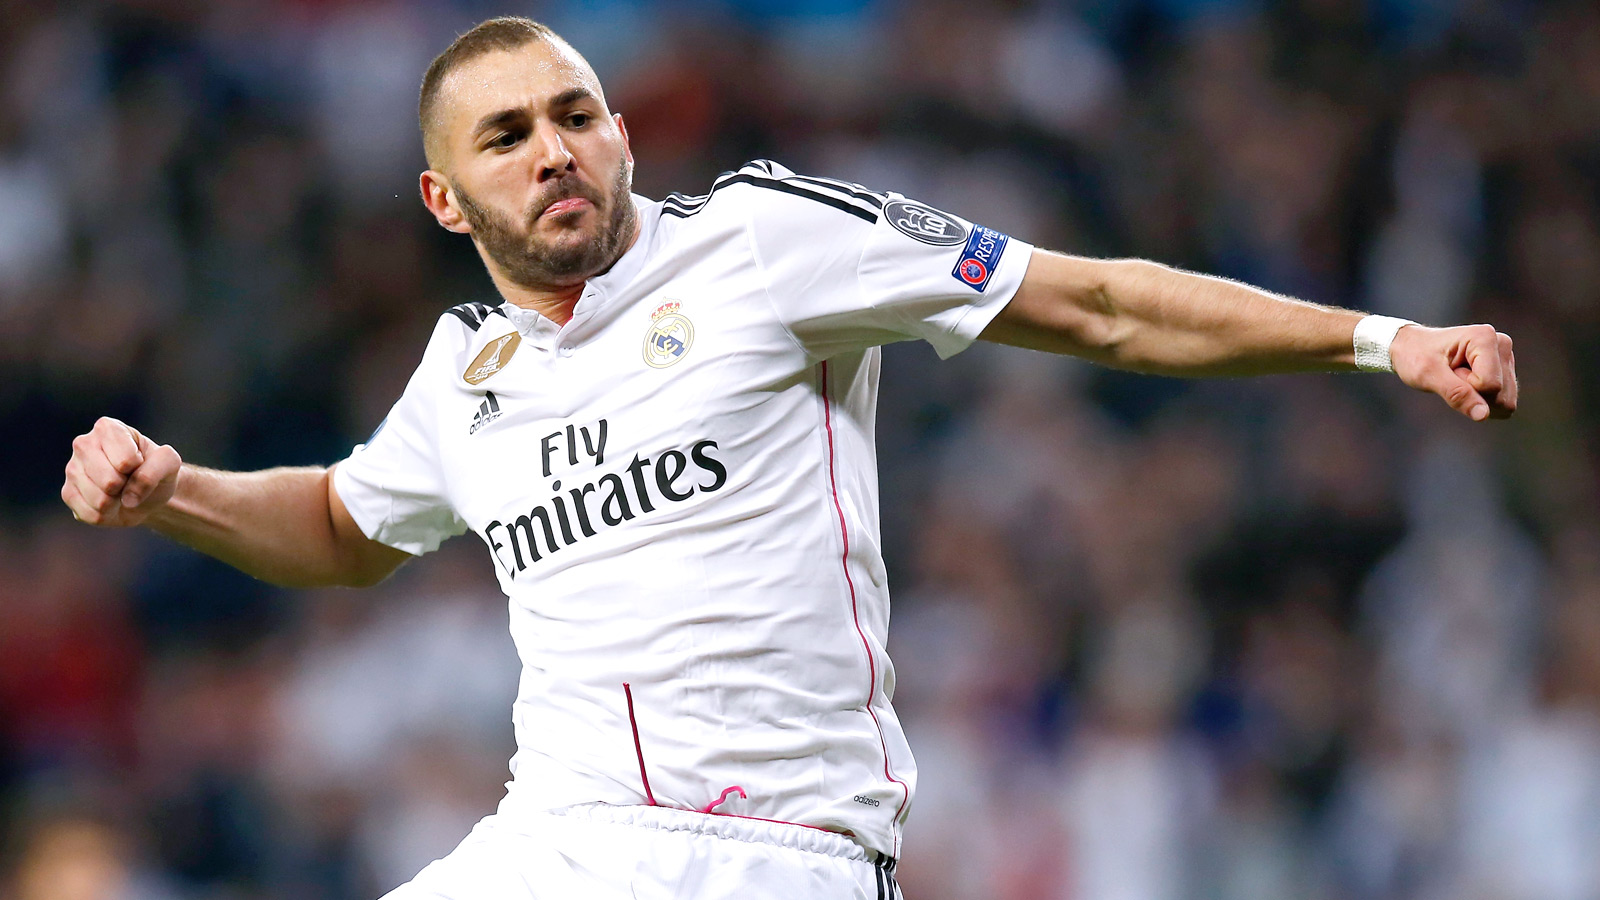 Wenger dismisses rumor Arsenal will submit bid for Benzema